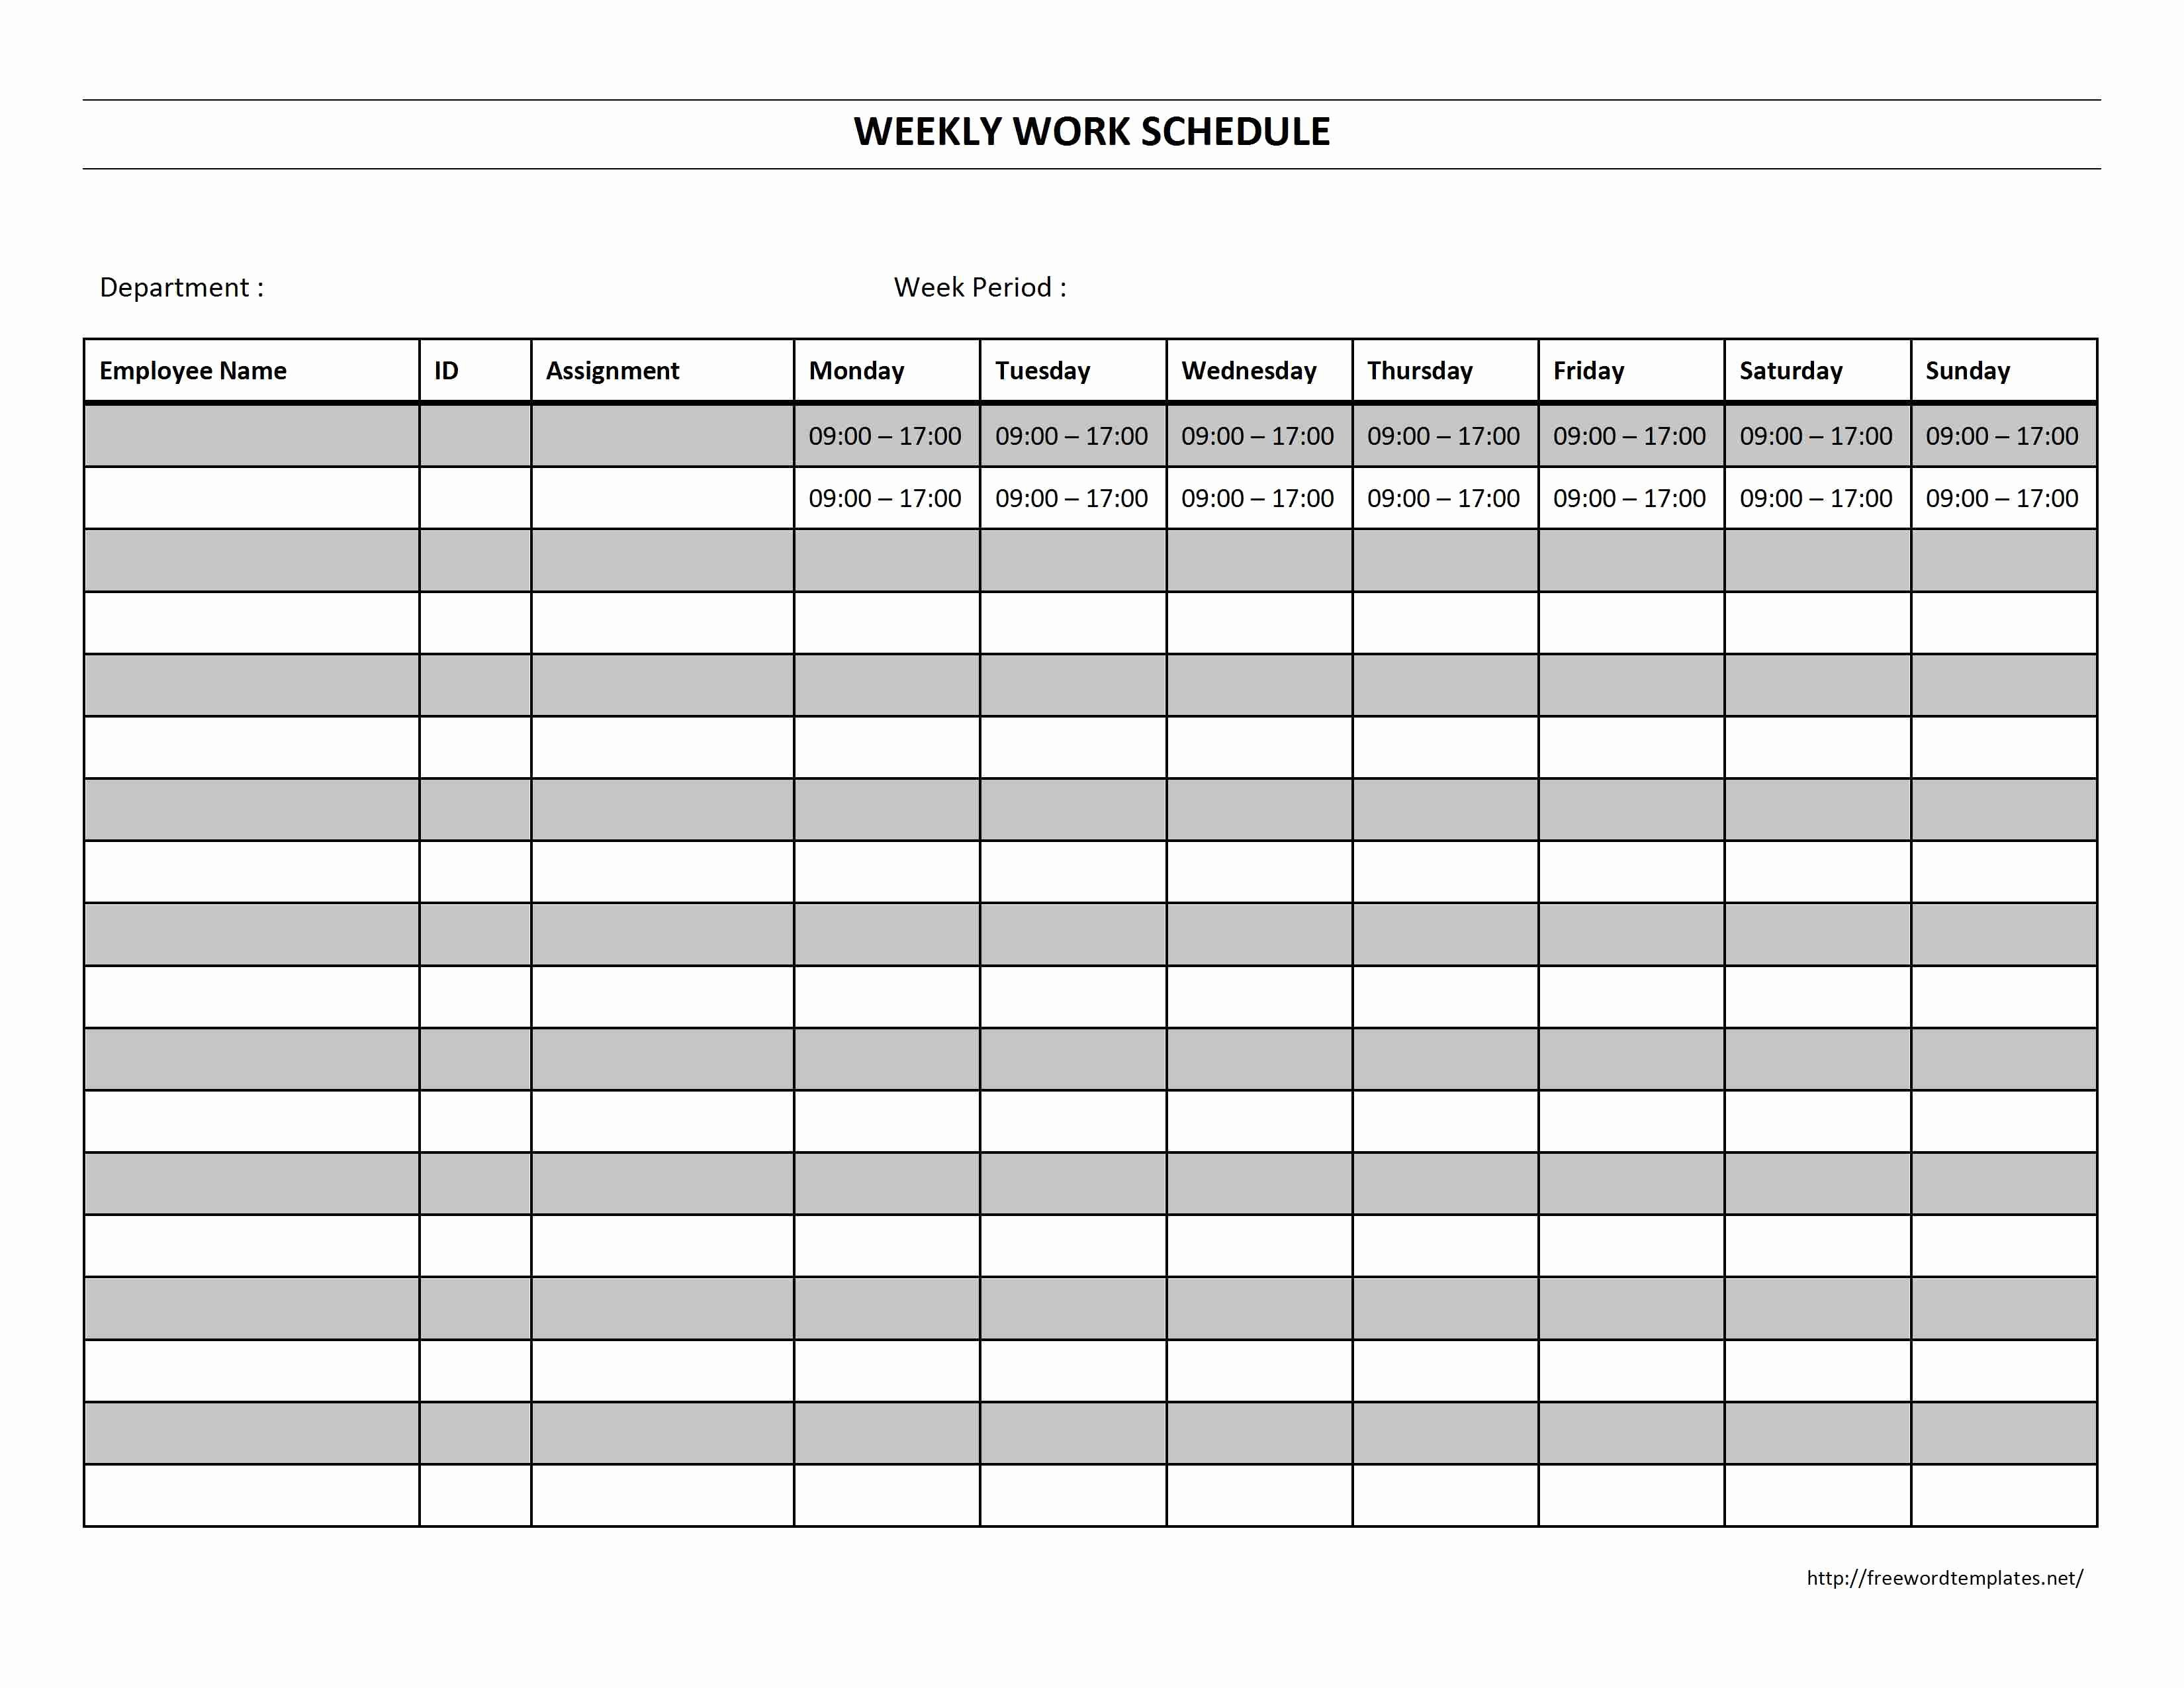 Monthly Work Schedule Template Lovely Weekly Work Schedule